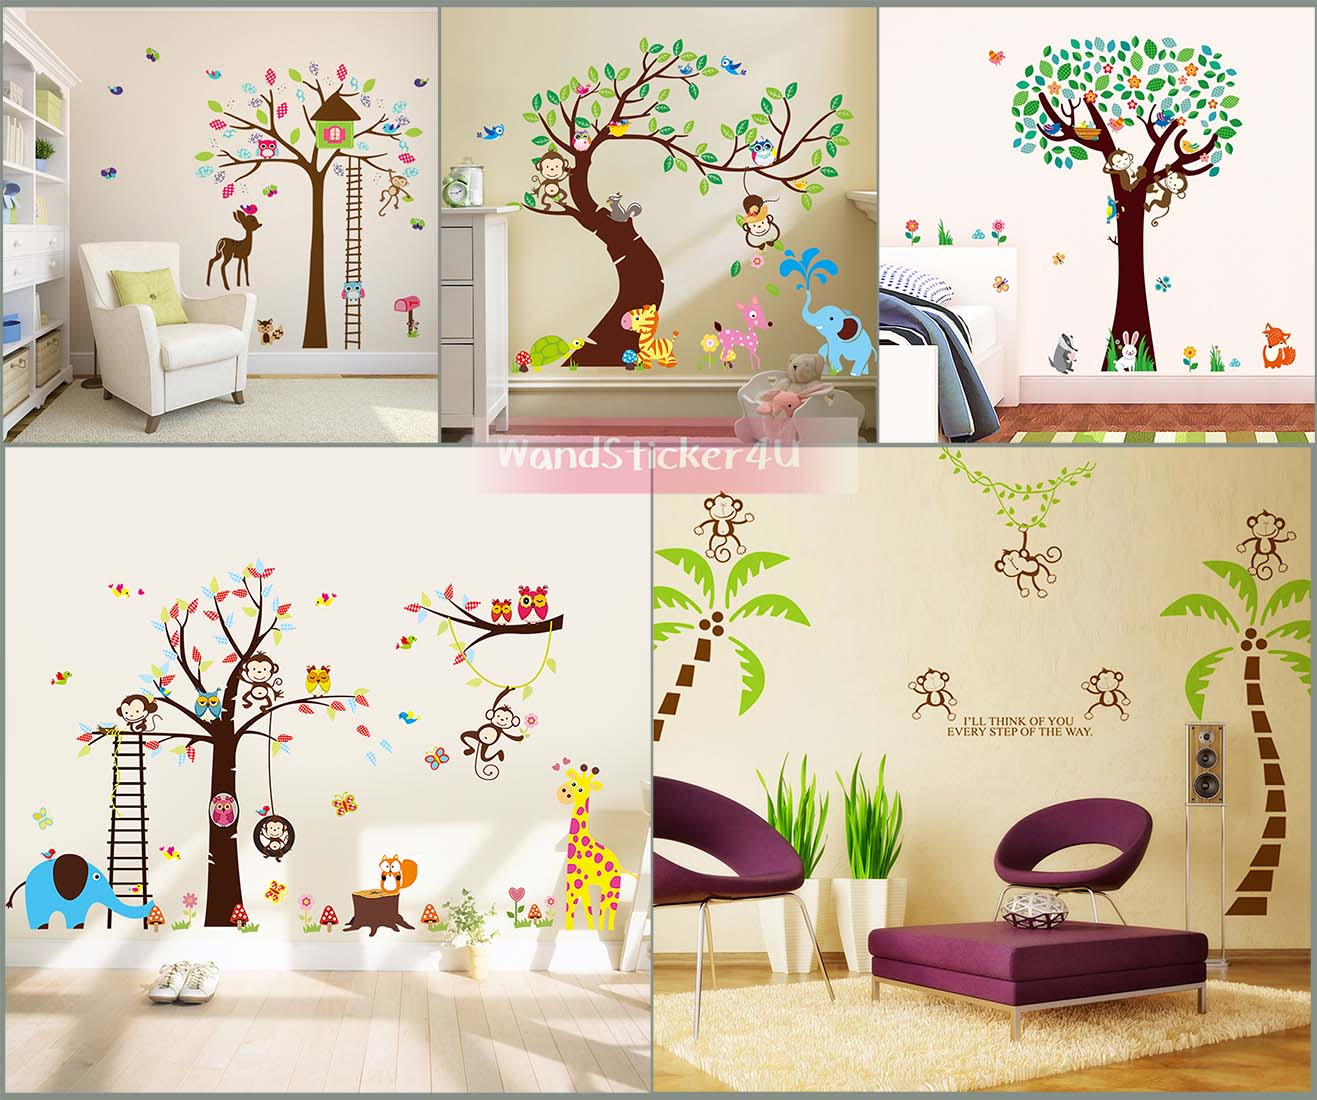 emejing wandtattoo kinderzimmer dschungel ideas. Black Bedroom Furniture Sets. Home Design Ideas